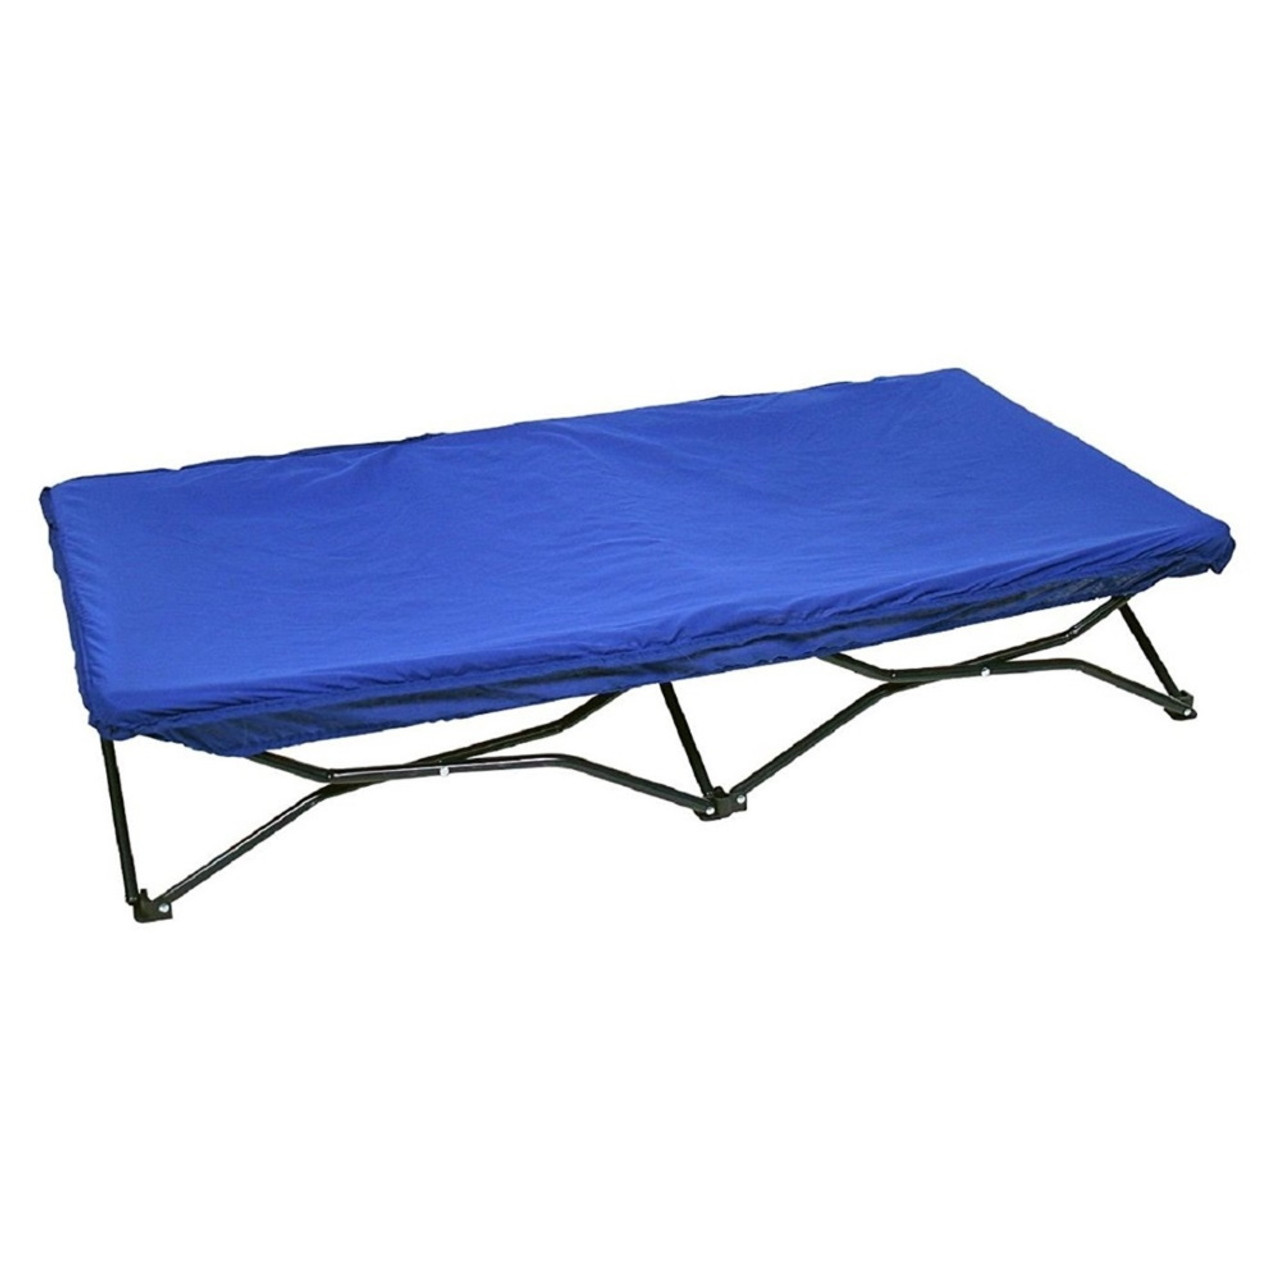 Regalo My Cot Portable Toddler Bed also includes a deluxe, fitted cot cover which protects bed and frame whilst providing cushioned comfort.